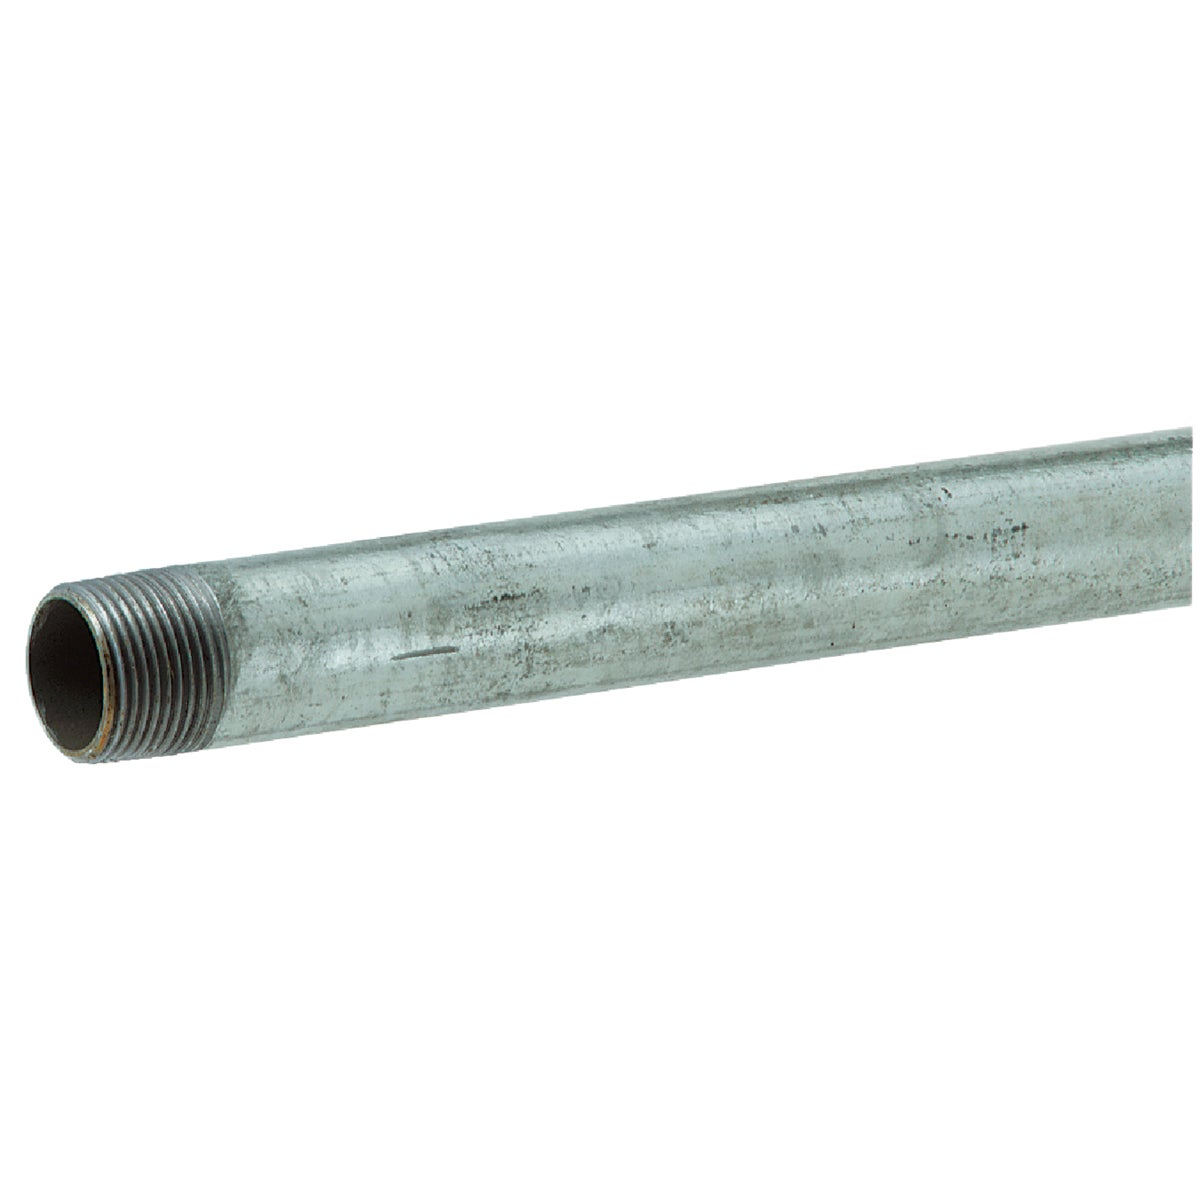 1/2X60 GALV RDI-CT PIPE - 1/2X60 by Southland Pipe Nippl